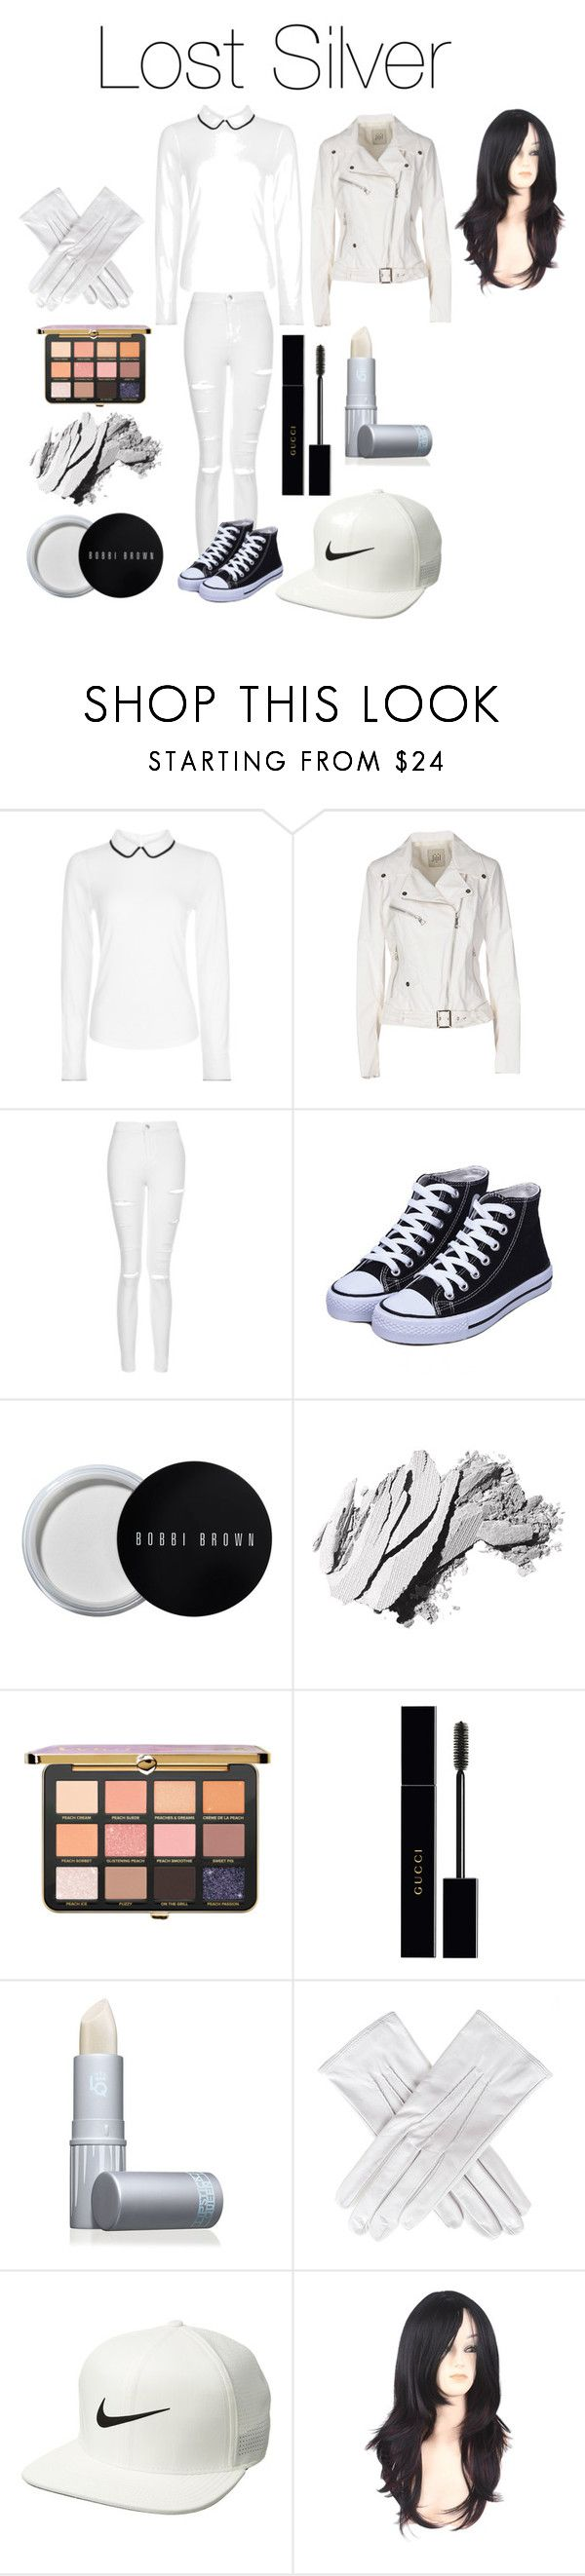 """Lost Silver (Creepypasta)"" by tori-camilleri on Polyvore featuring Hobbs, Jijil, Topshop, Bobbi Brown Cosmetics, Gucci, Lipstick Queen, Black, NIKE and WithChic"